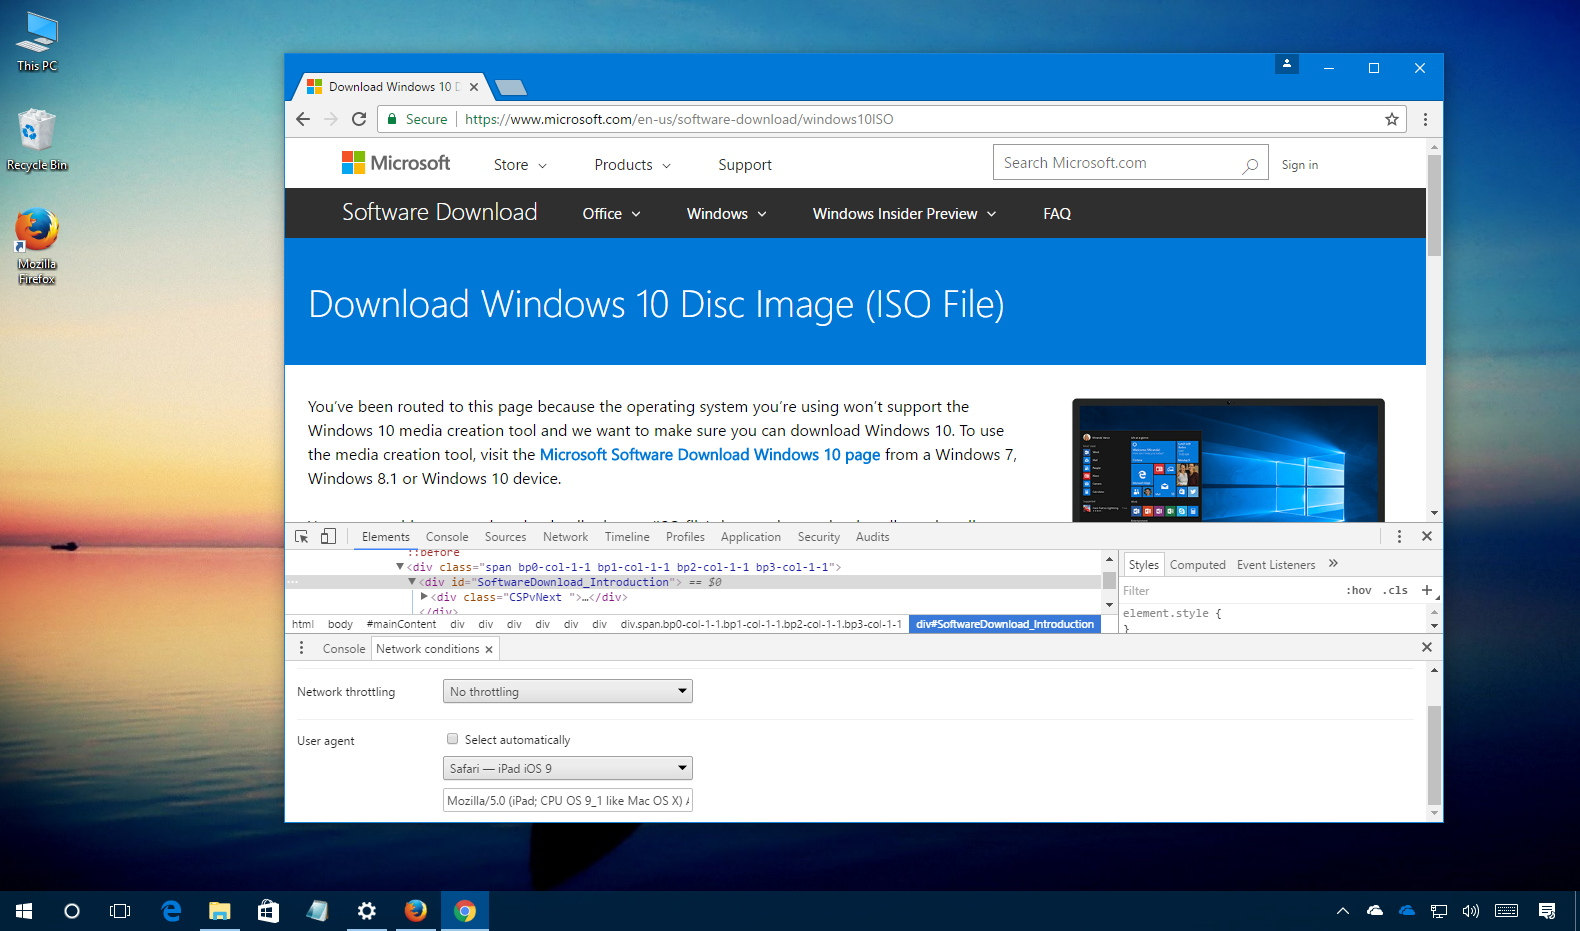 How to Download Windows 10 ISO File to USB Drive